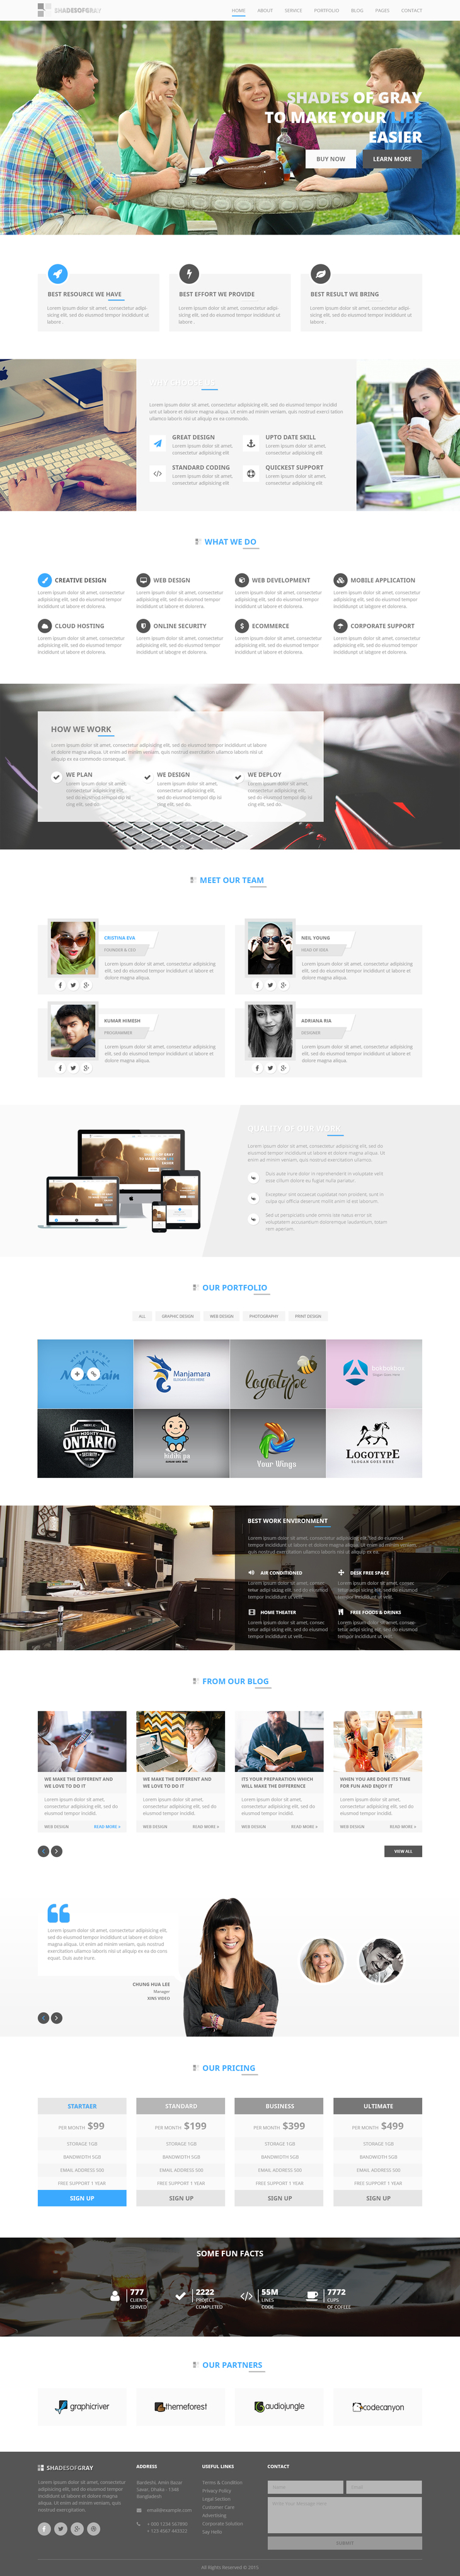 shades-gray-free-psd-web-templates